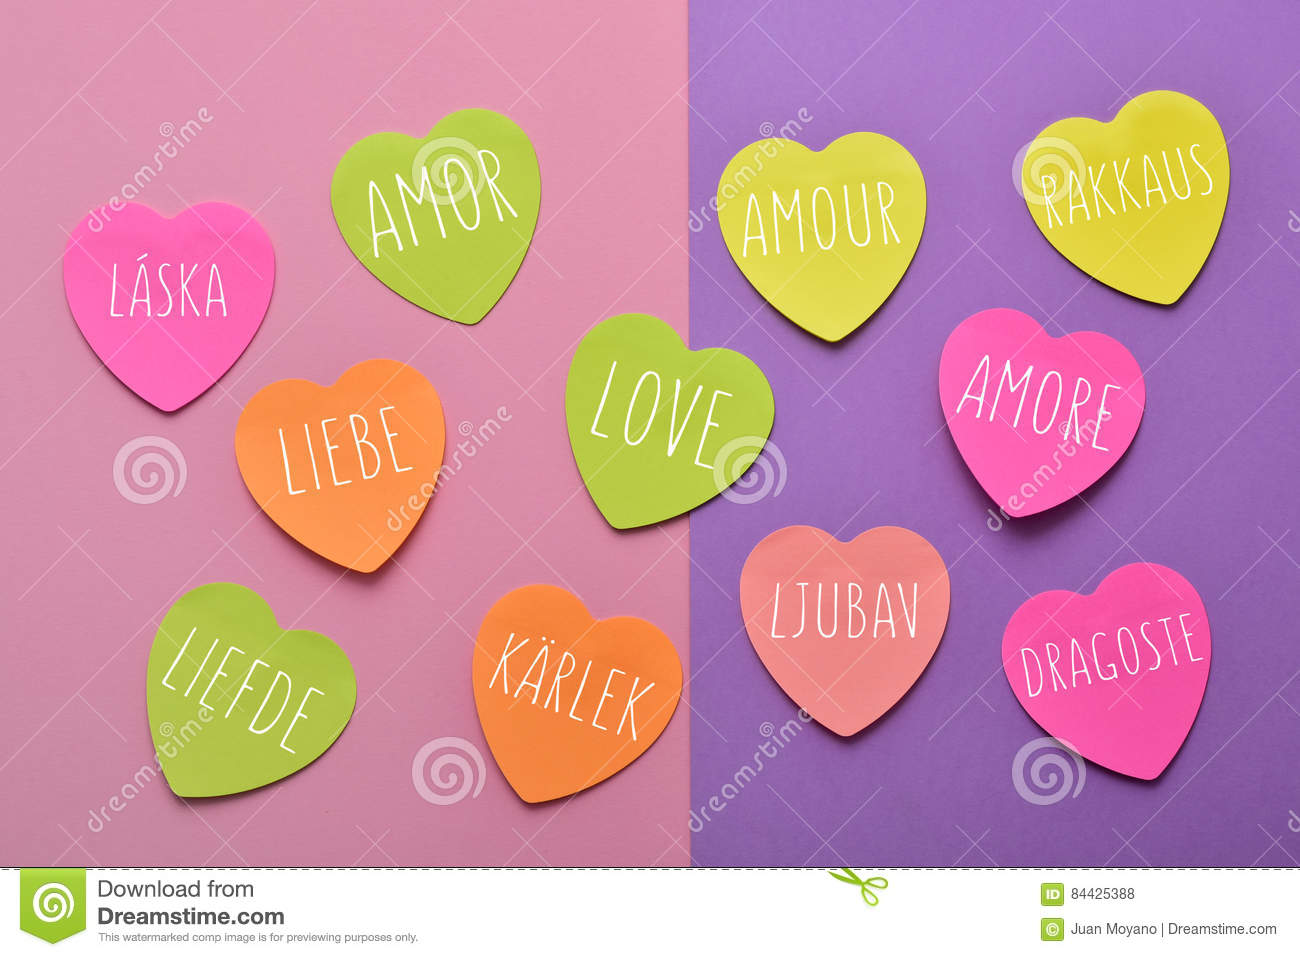 Some Heart Shaped Sticky Notes Of Different Colors With The Word Love Written In Different Languages Such As Spanish Portuguese Italian French